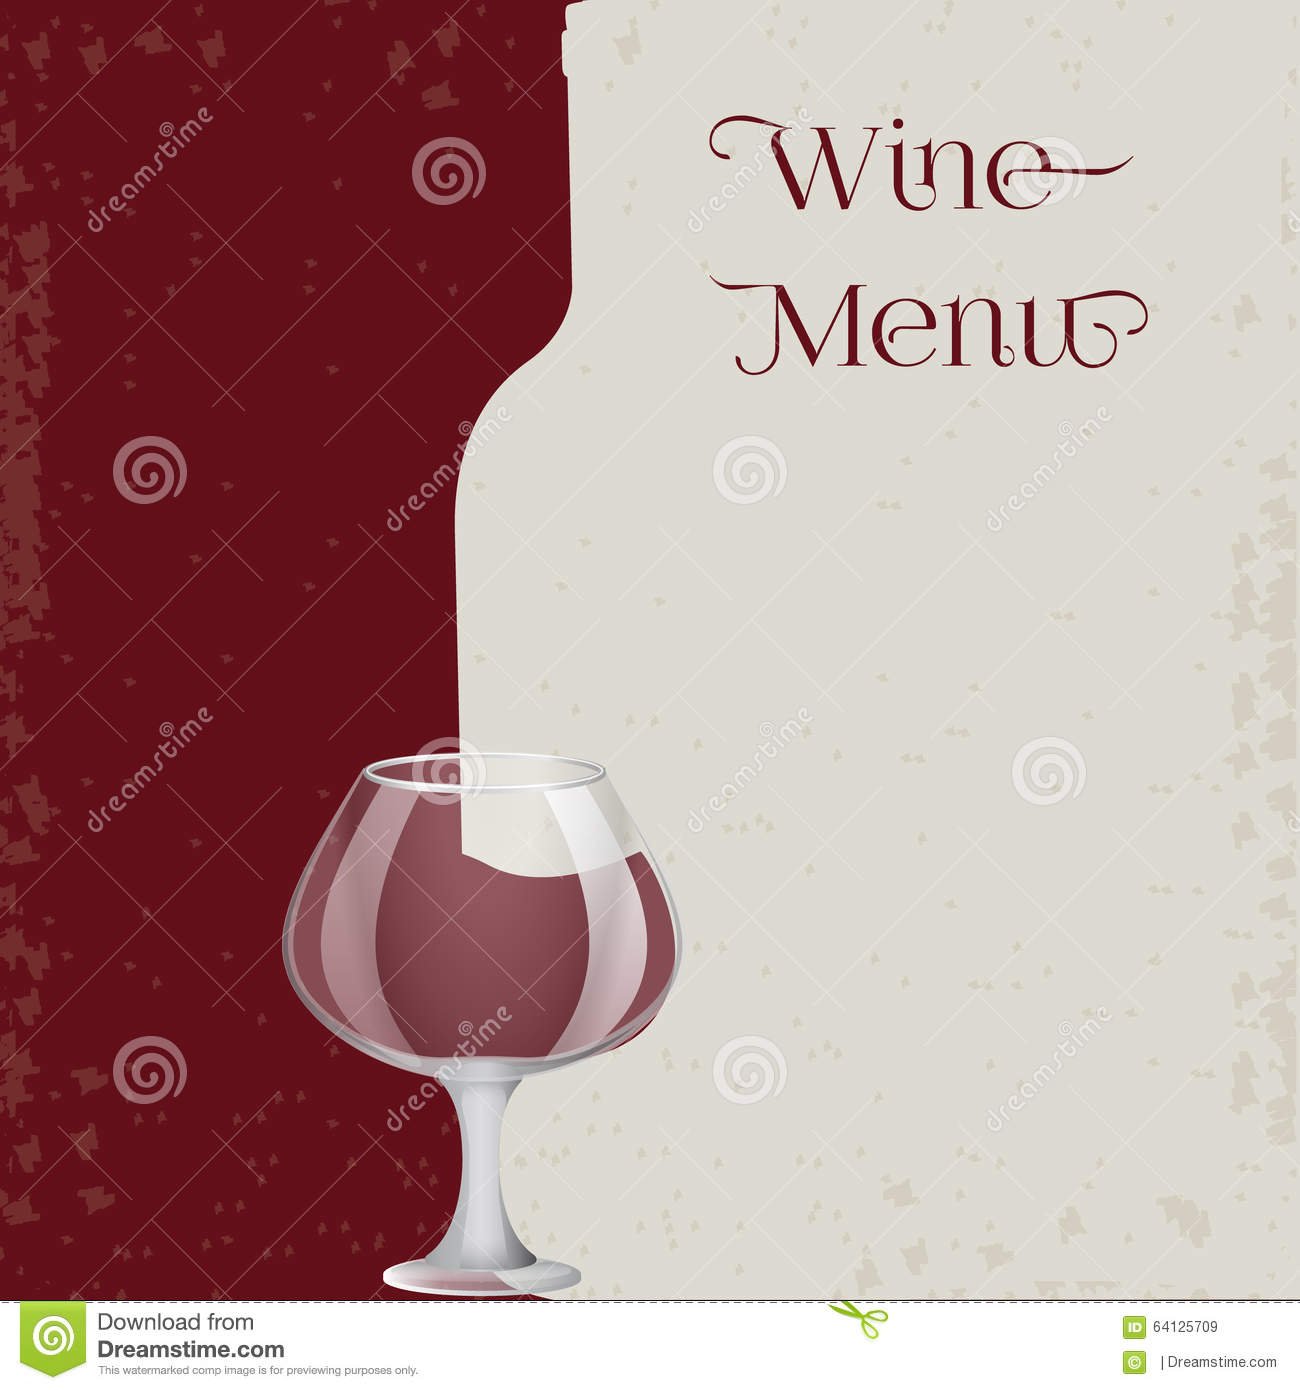 rad wine menu background. stock vector. illustration of illustration